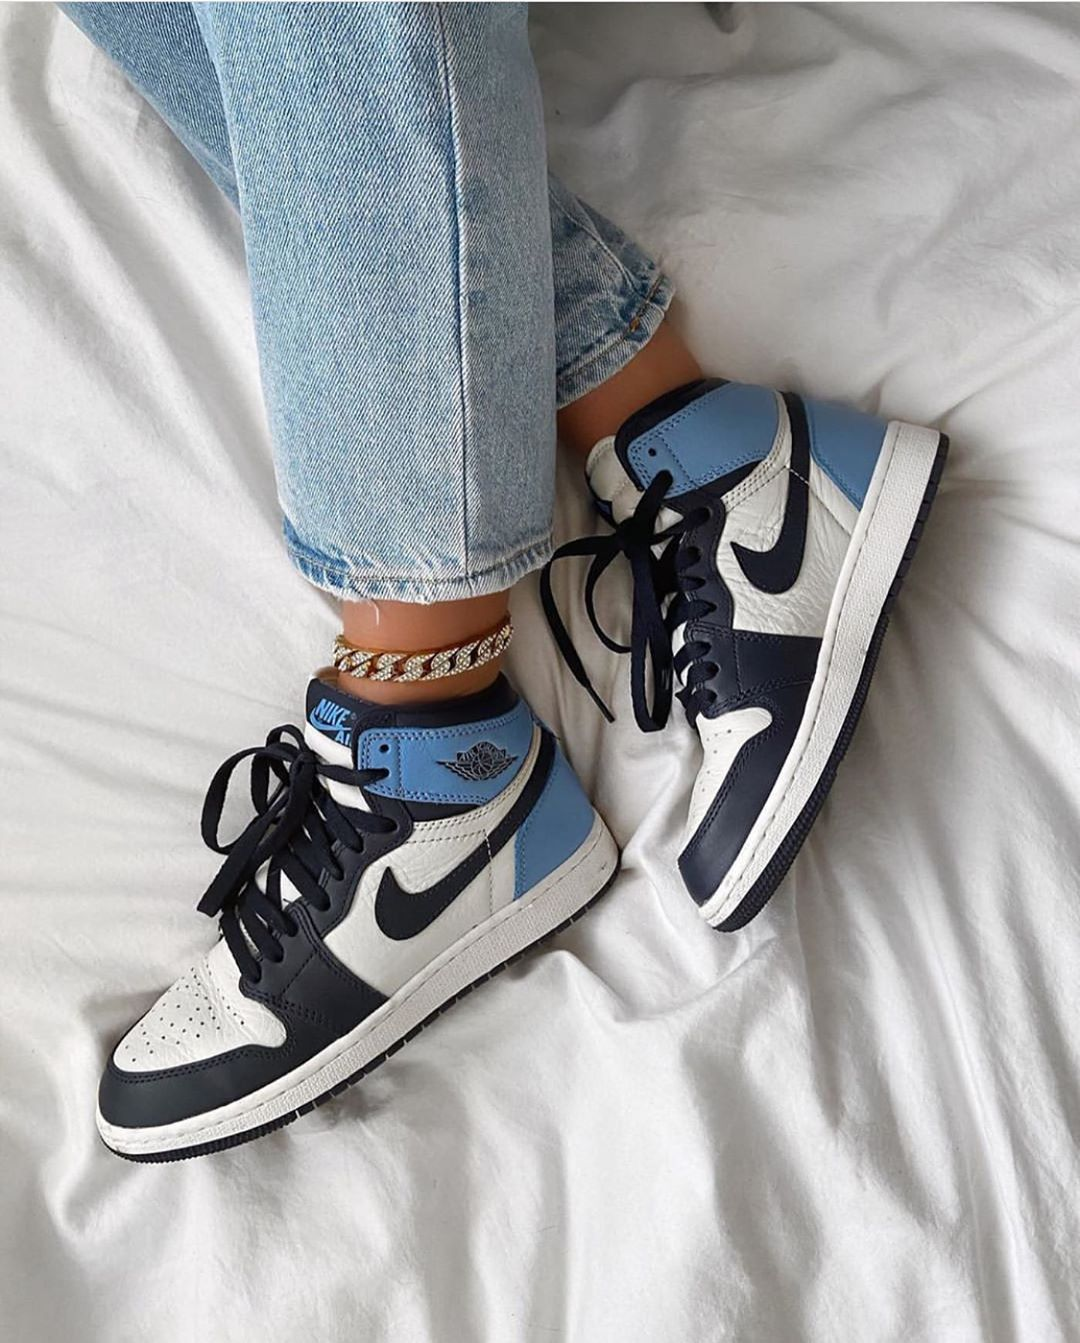 Jordan 1 Retro High Obsidian UNC in 2020 | Jordan shoes ...